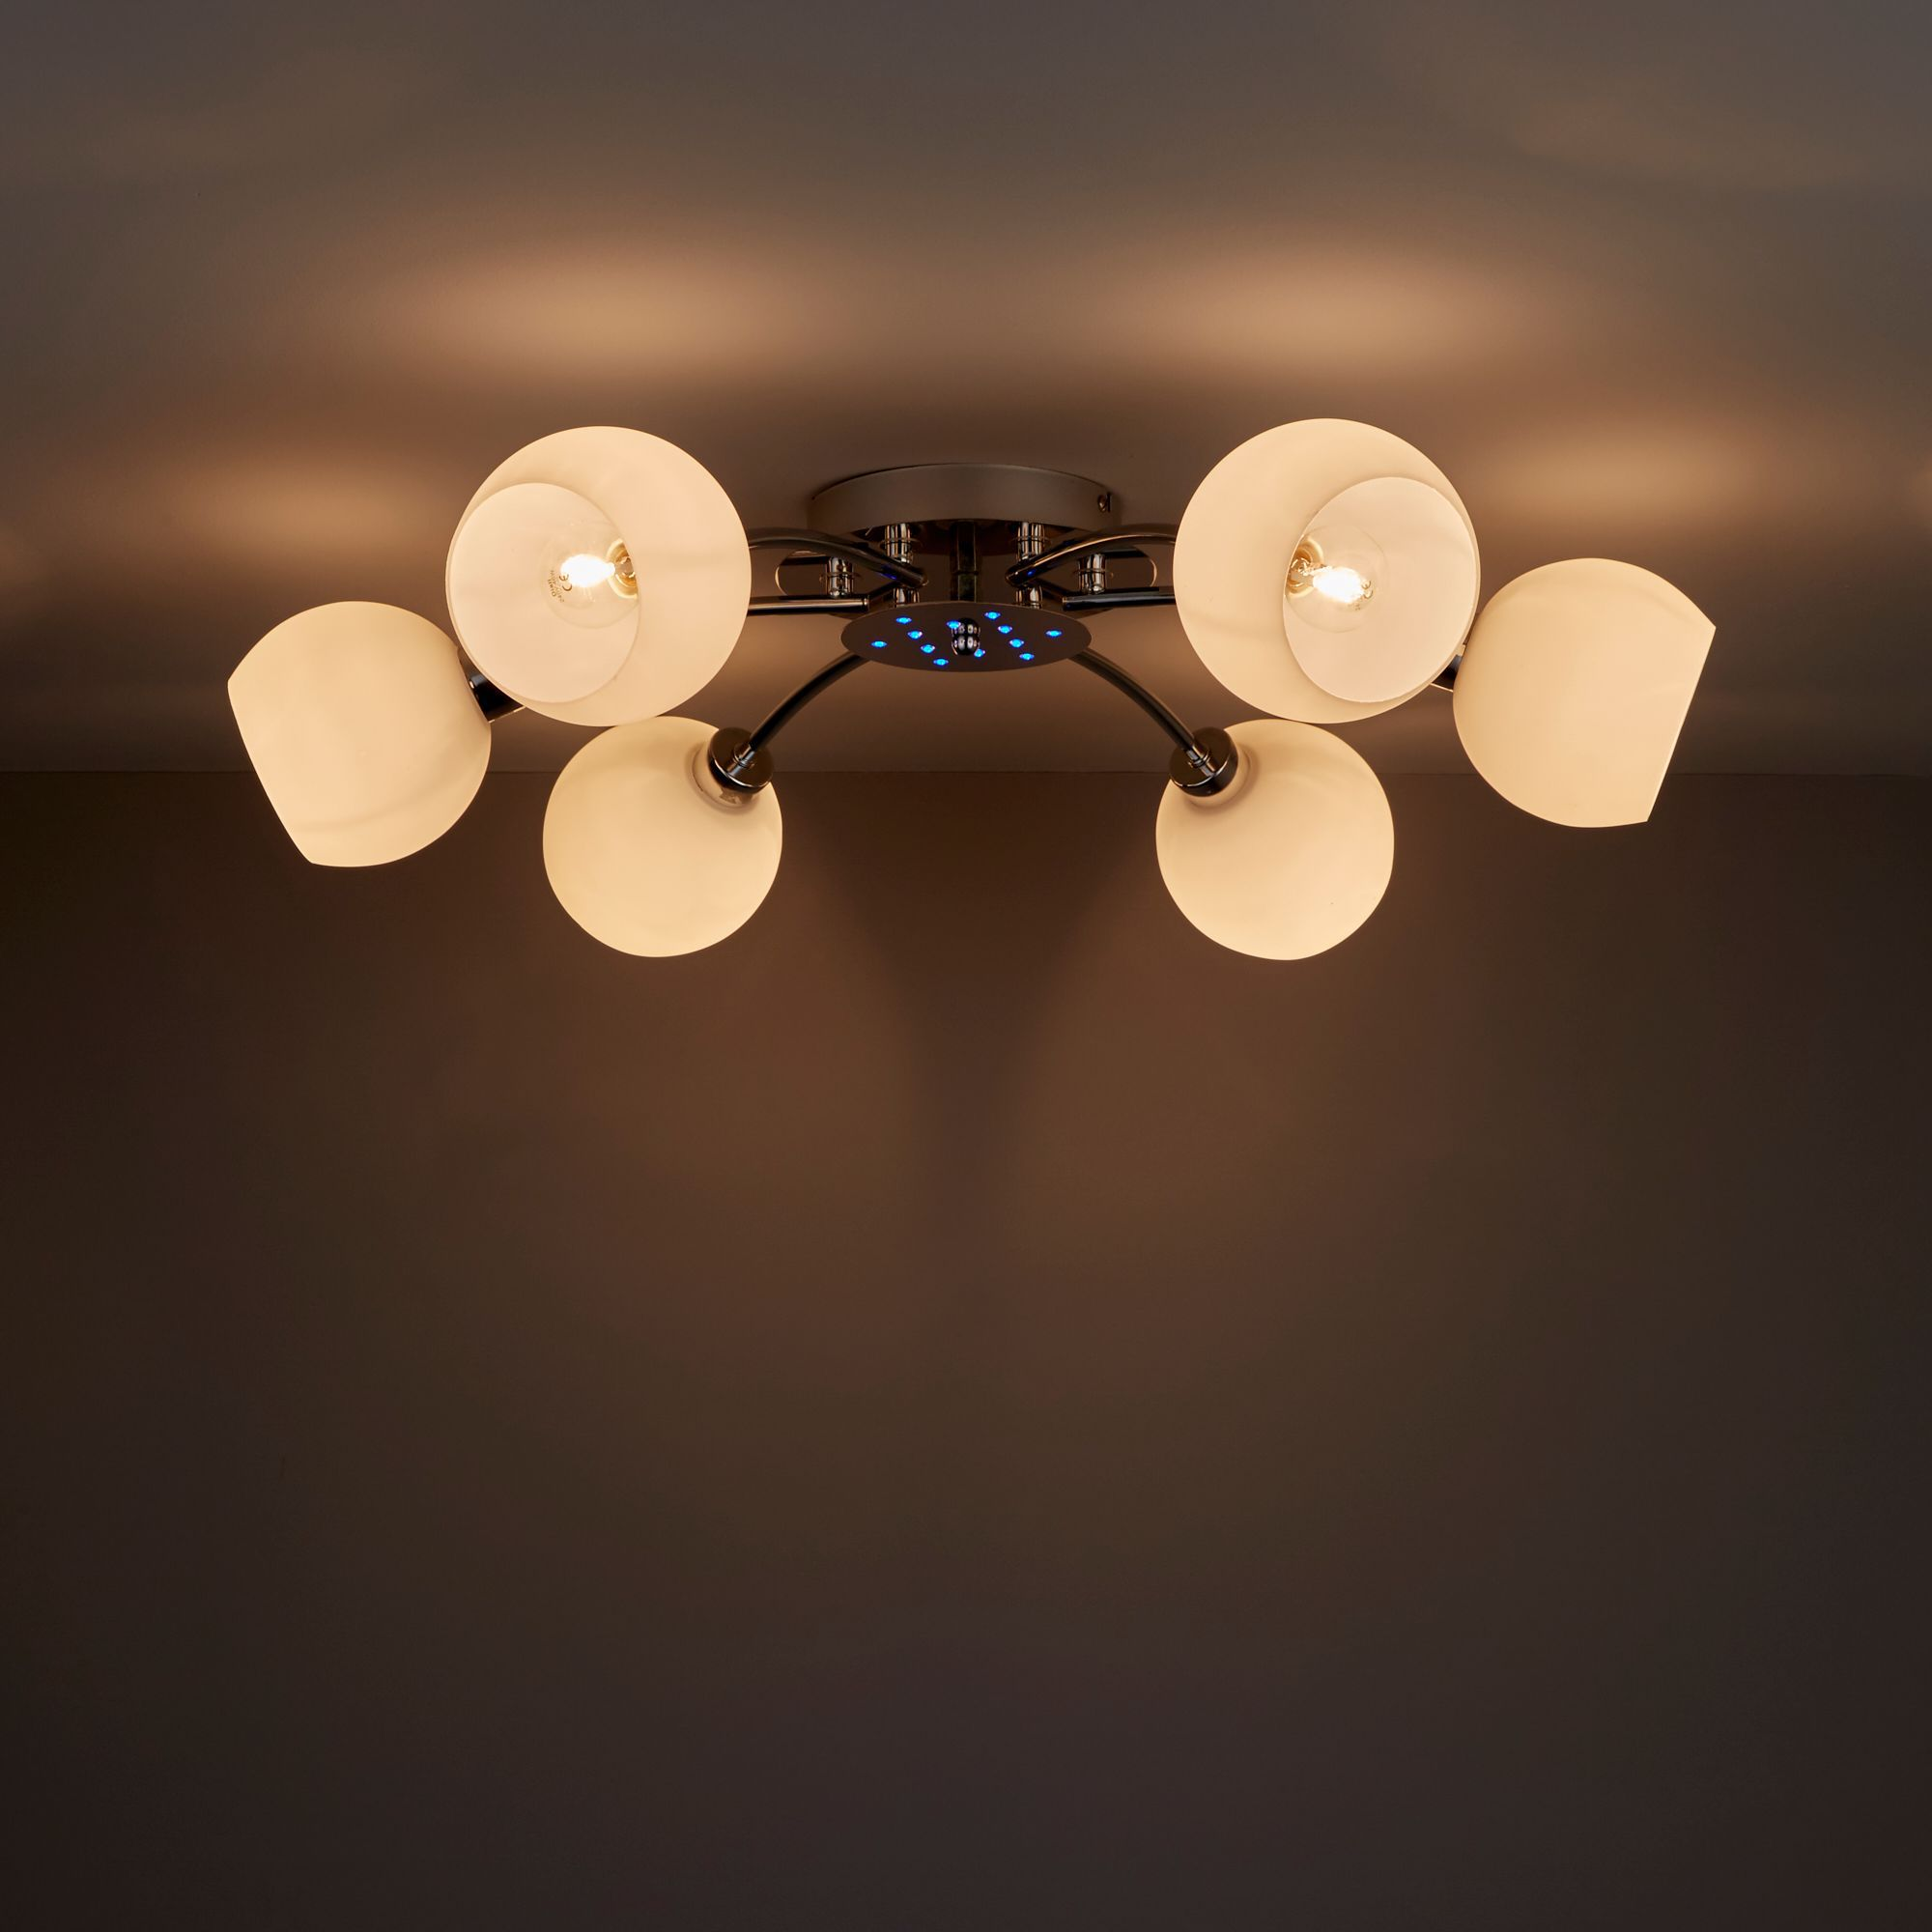 Vacuna Chrome Effect 6 Lamp Ceiling Light Departments